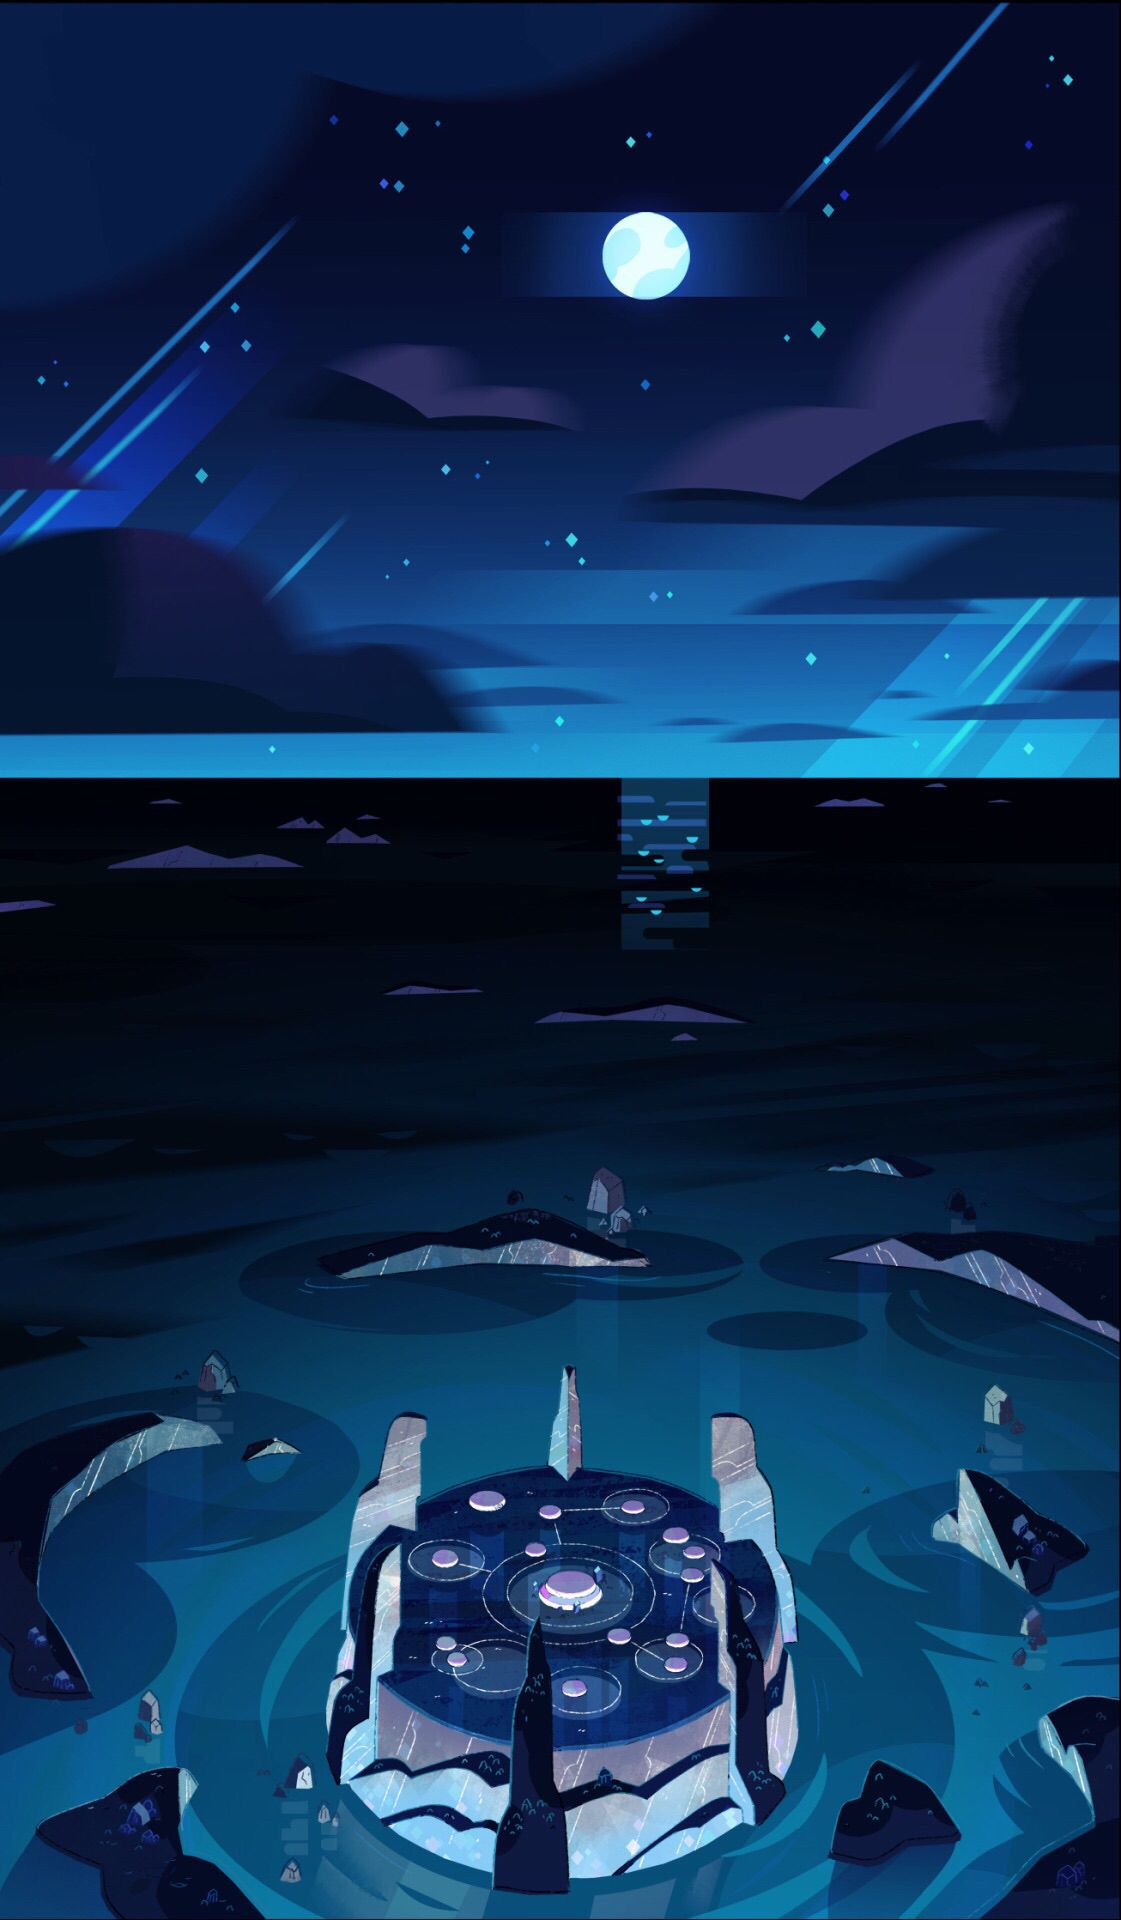 Warppad Background Steven Universe Steven Universe Wallpaper